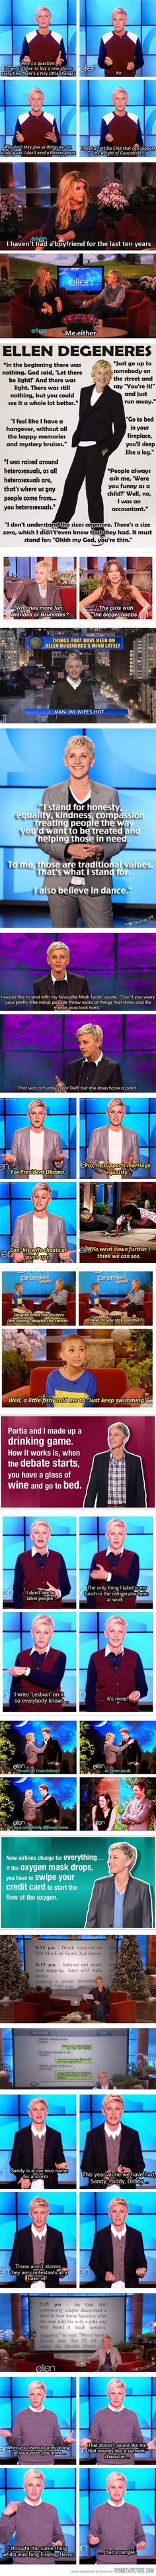 Reasons I LOVE Ellen